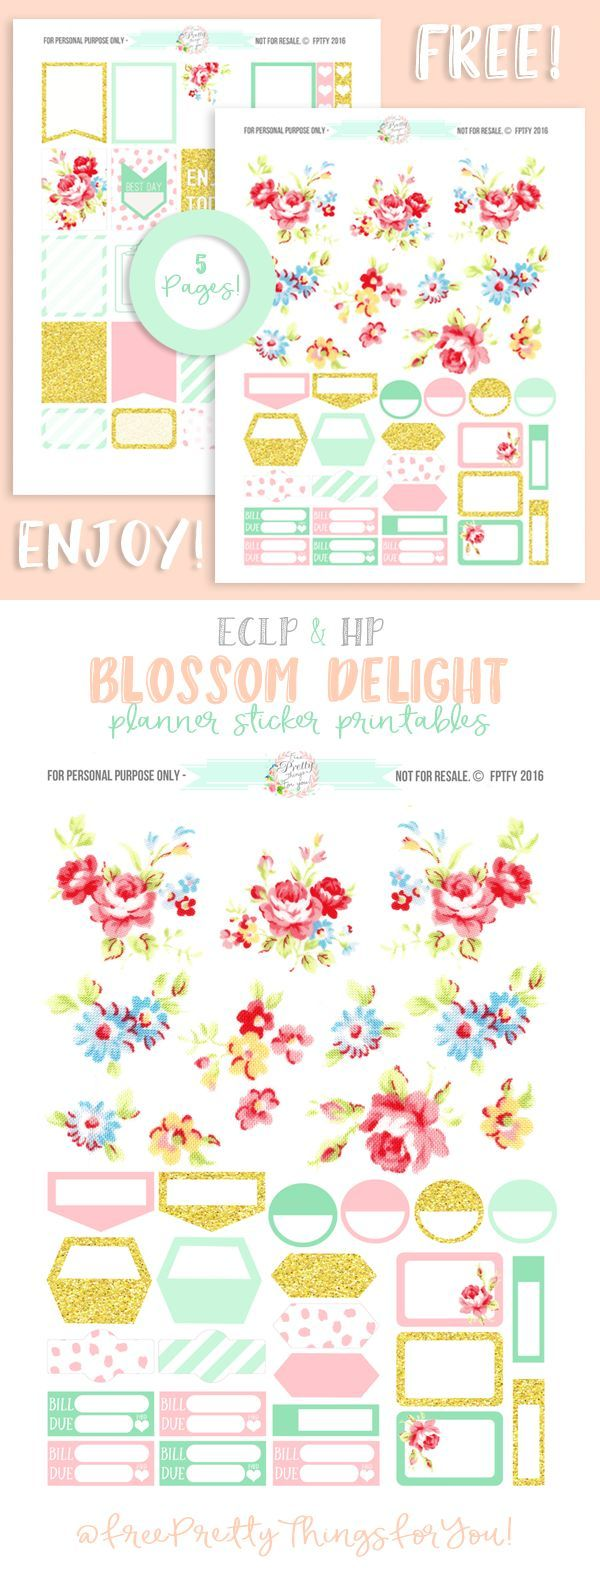 Blossom Delight Planner Addict Printable Collection! - Free Pretty Things For You